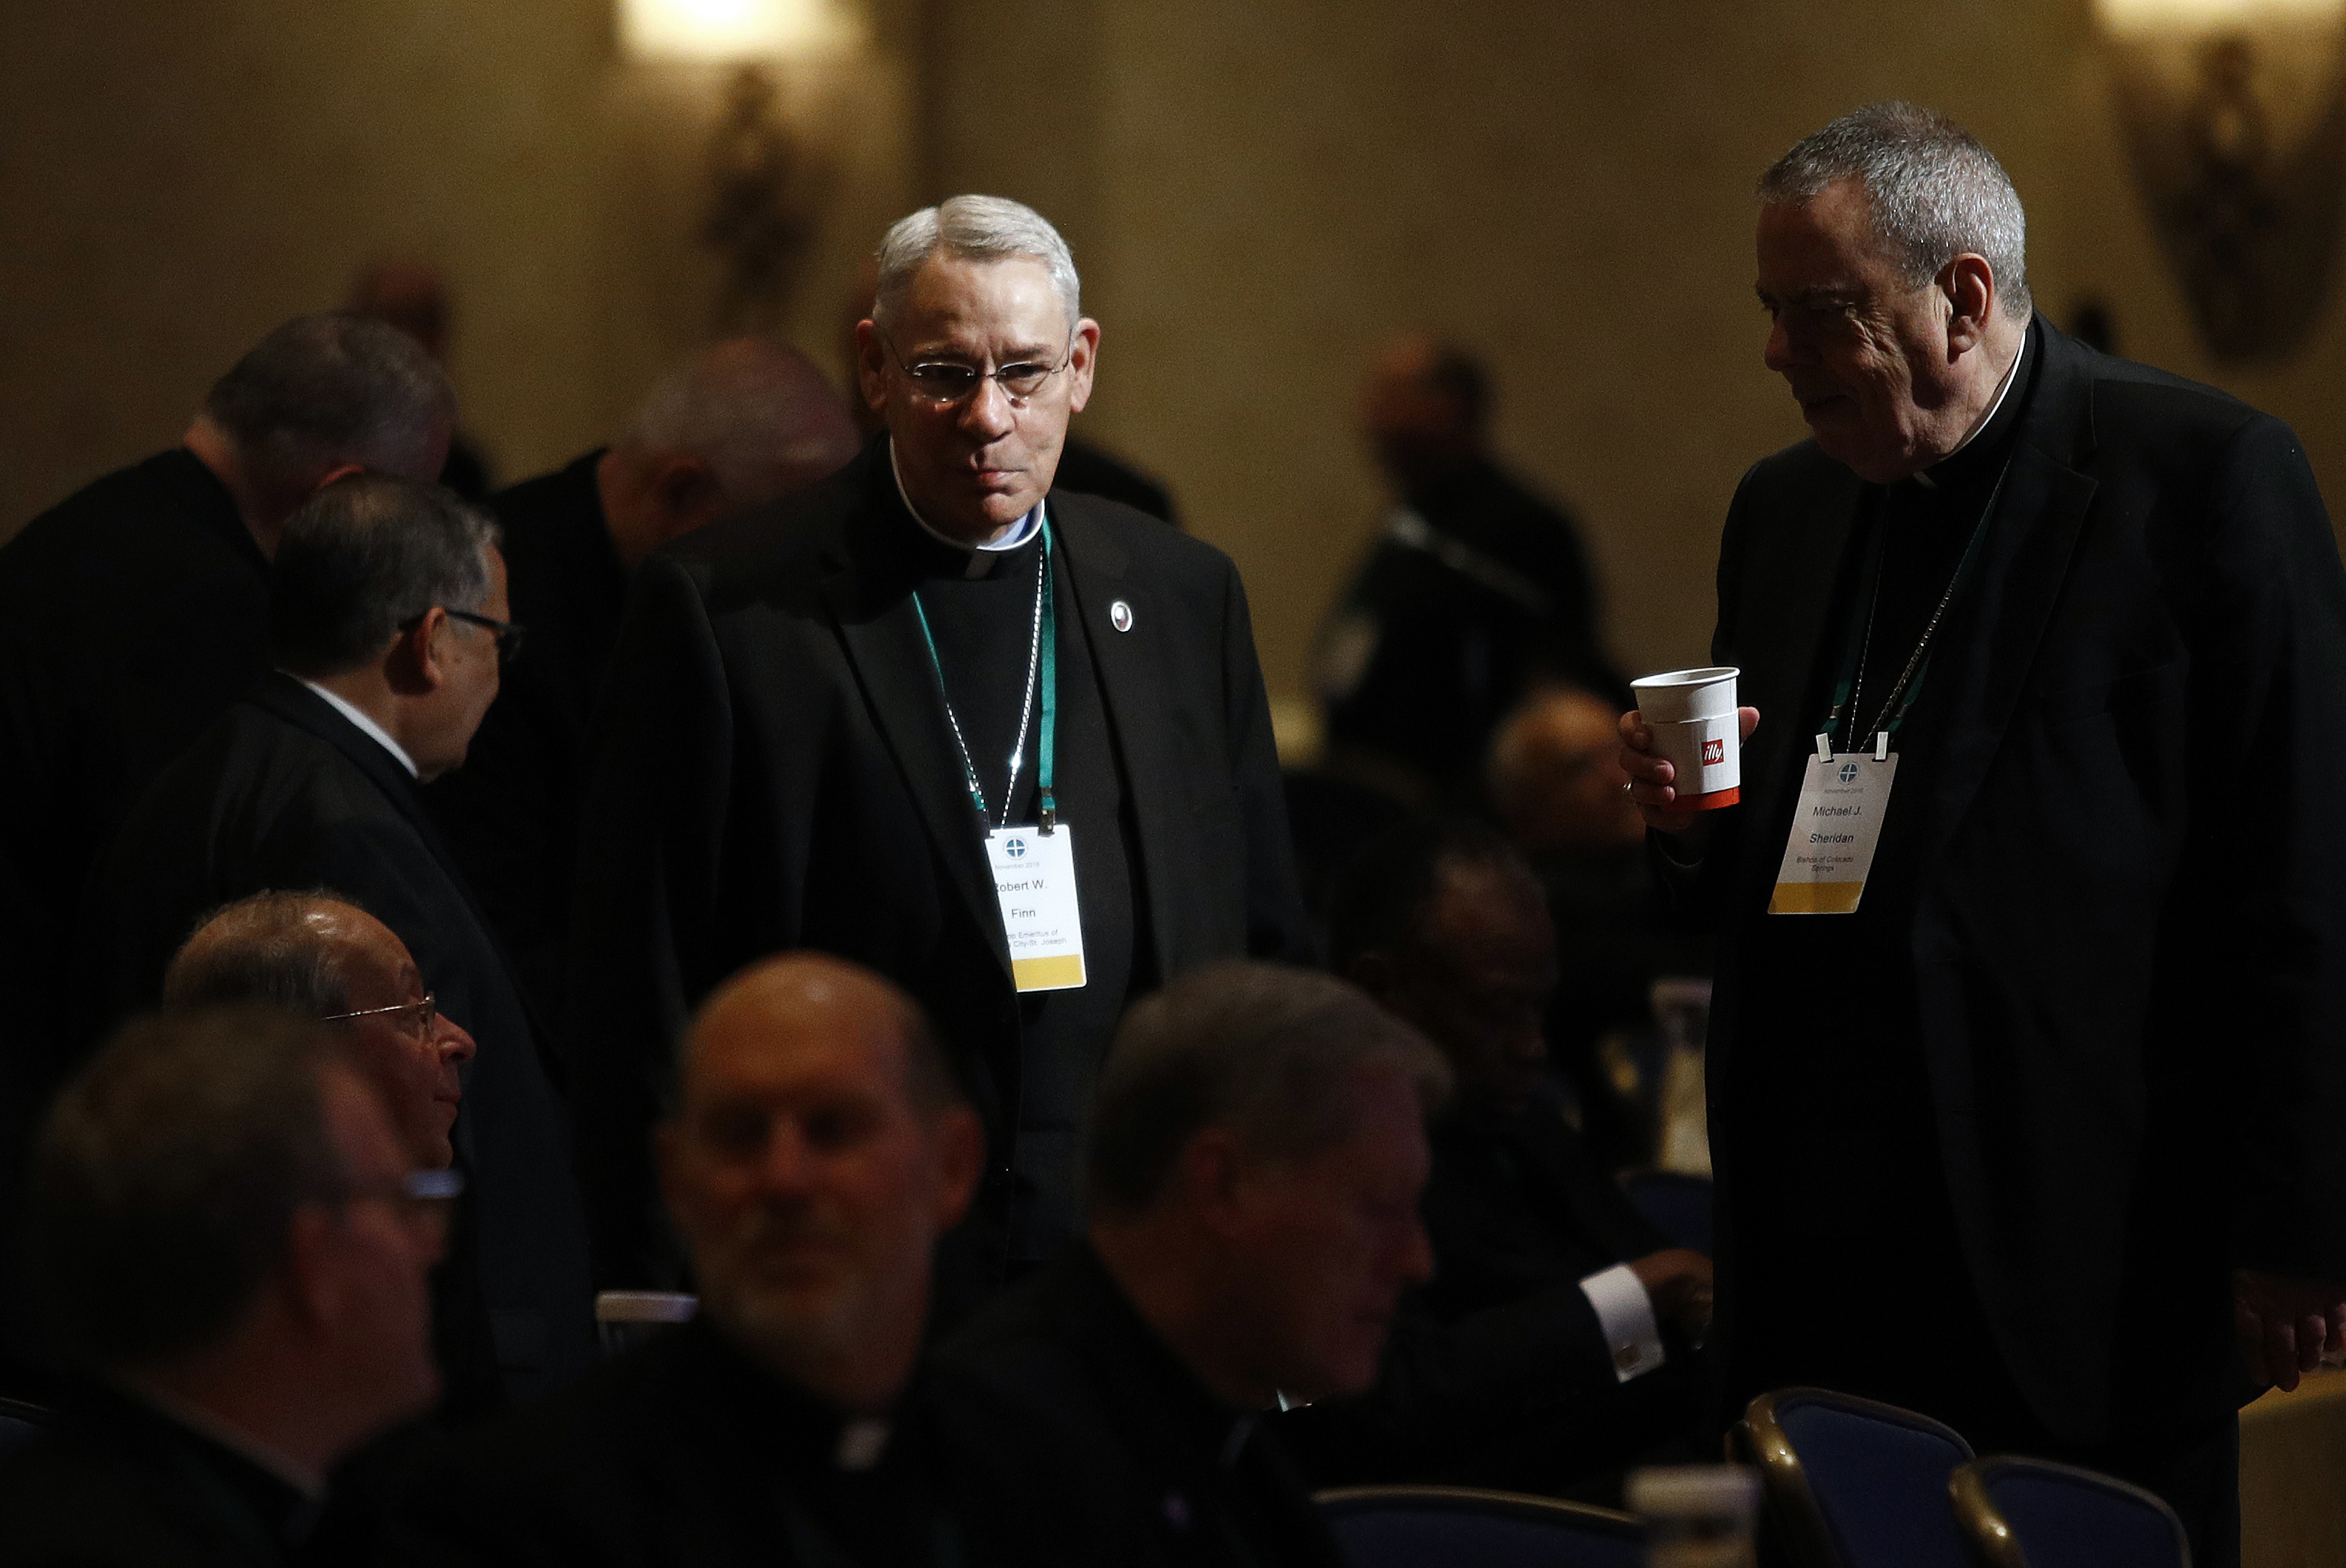 Bishop Emeritus Robert Finn, of Kansas City, Mo., center, speaks with fellow members of the United States Conference of Catholic Bishops at the annual fall meeting Tuesday in Baltimore.